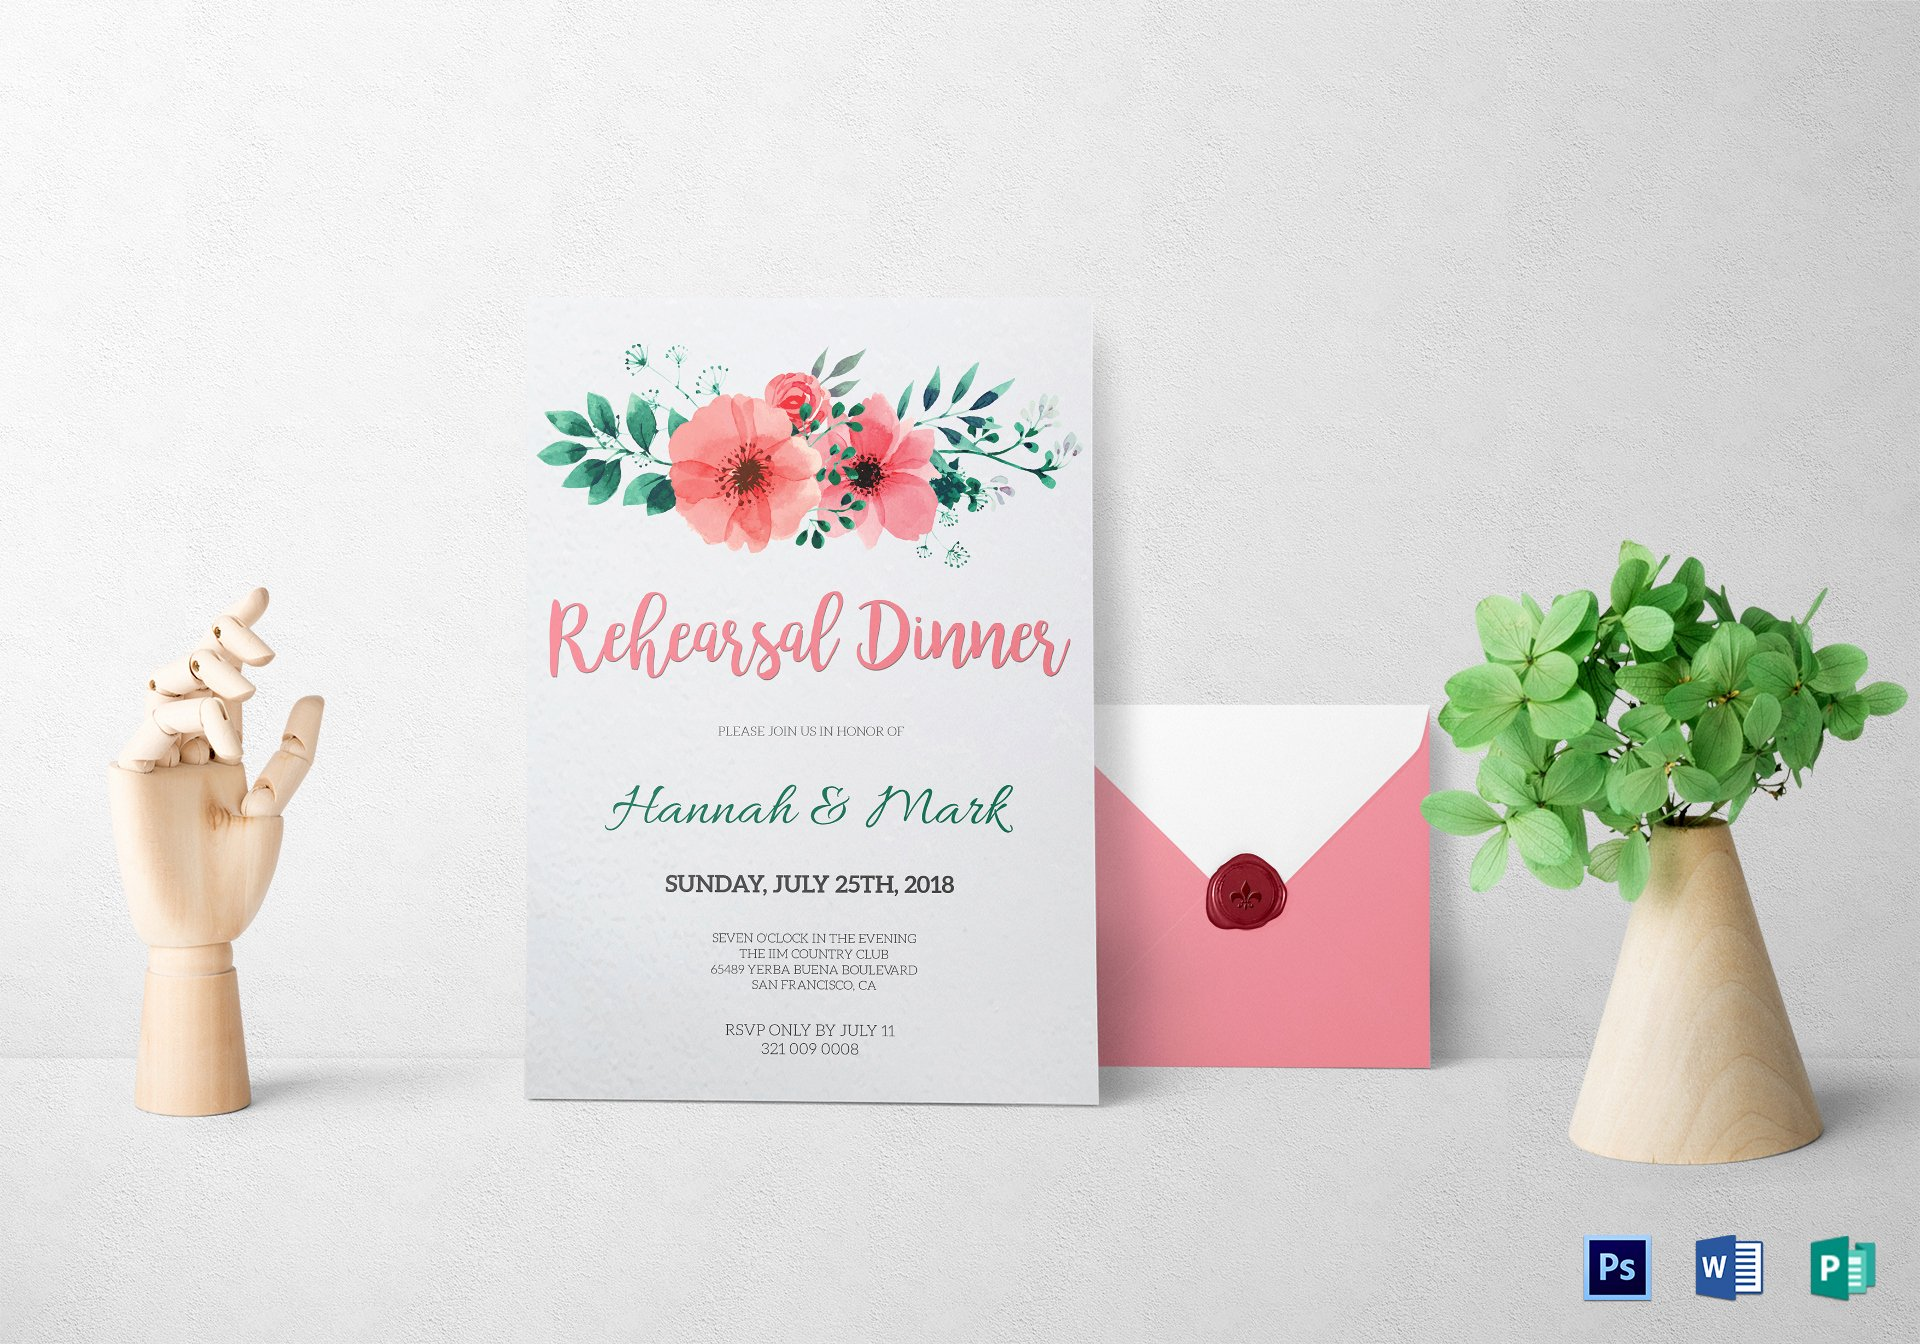 Rehearsal Dinner Invitation Template Word Luxury Floral Rehearsal Dinner Invitation Design Template In Word Psd Publisher